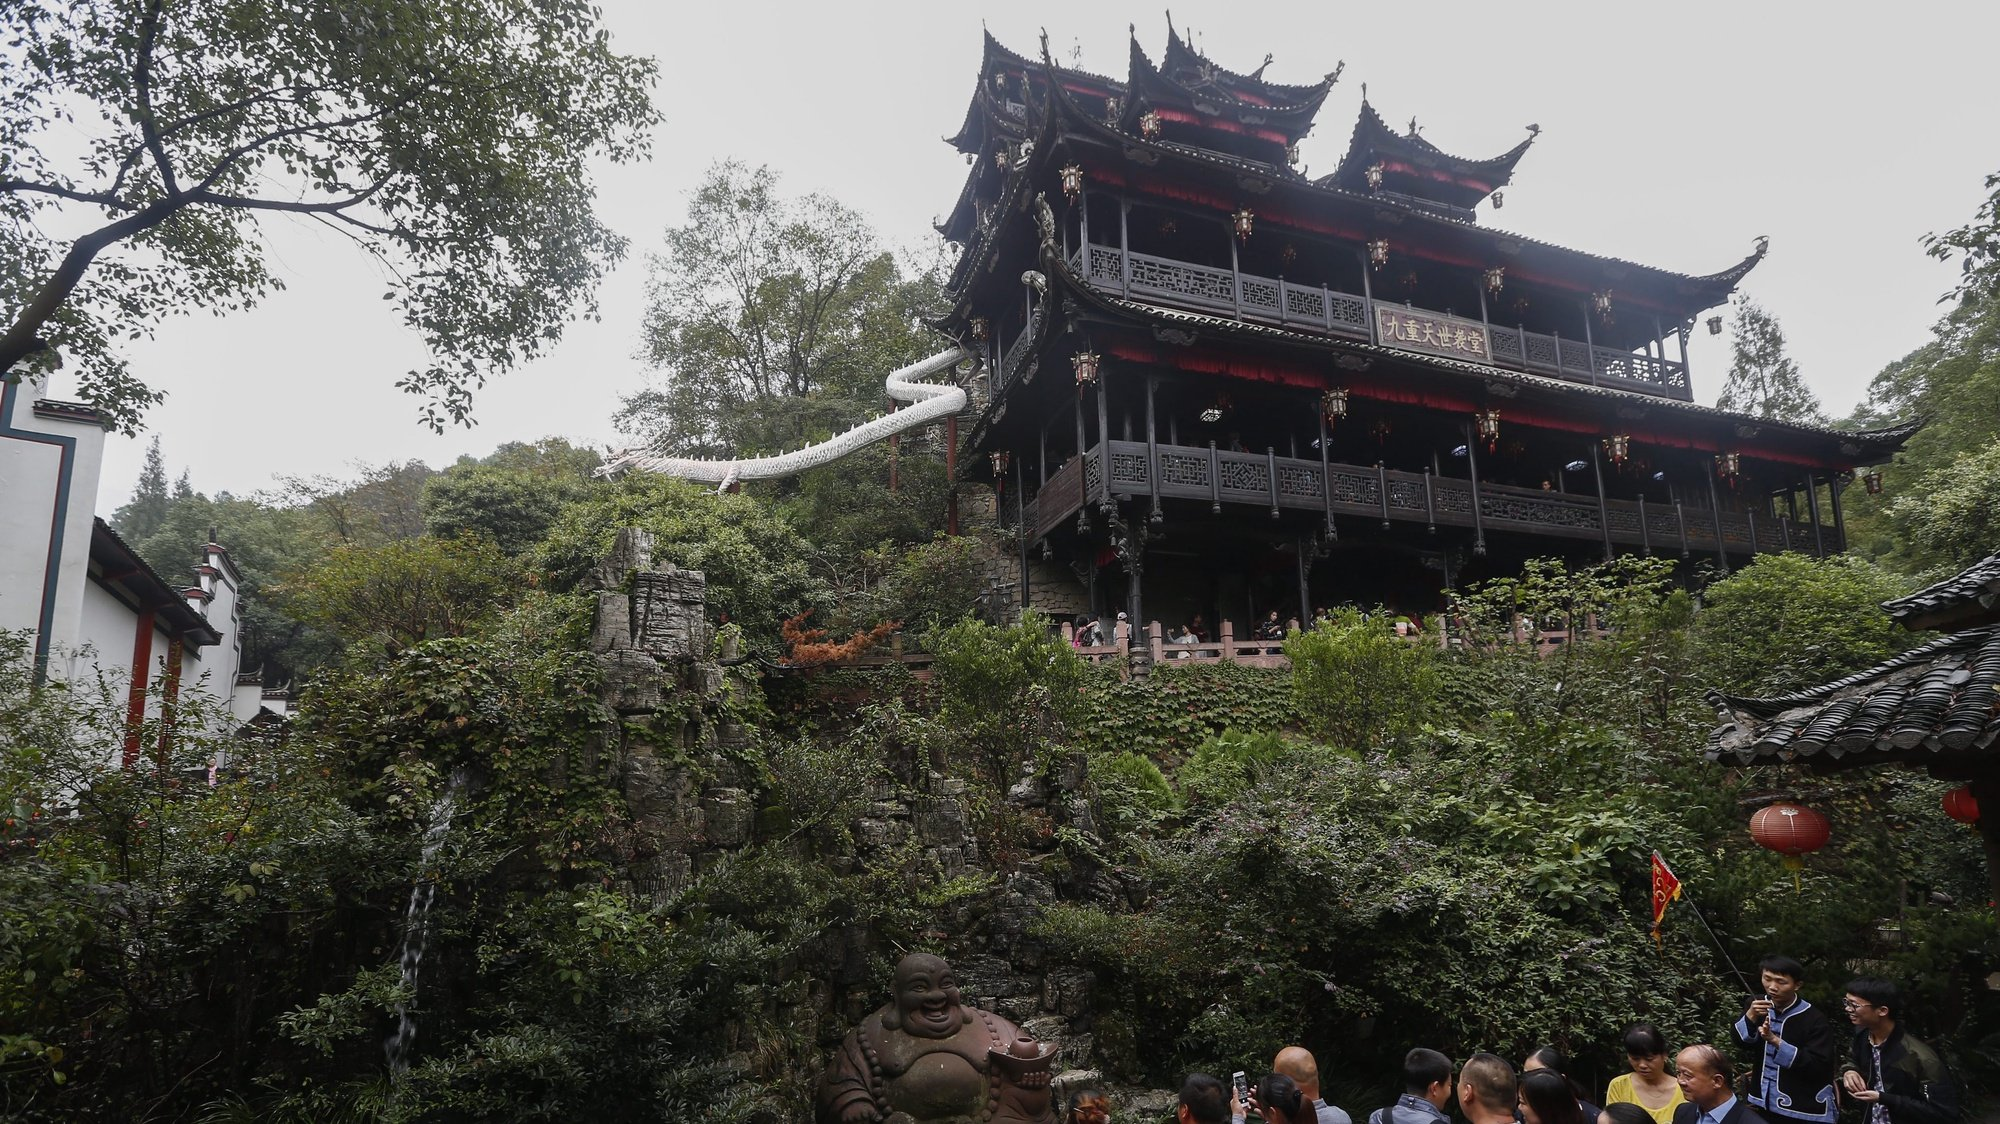 epa05595994 A wooden house designed according to the culture of the Tujia ethnic minority group stands above tourists at the Tujia Minority Castle tourist compound in Zhangjiajie City, Hunan Province, China, 21 October 2016. The Tujia are one of 33 ethnic minority groups in Zhangjiajie, a popular tourism city with a population of 1.7 million.  EPA/ROLEX DELA PENA